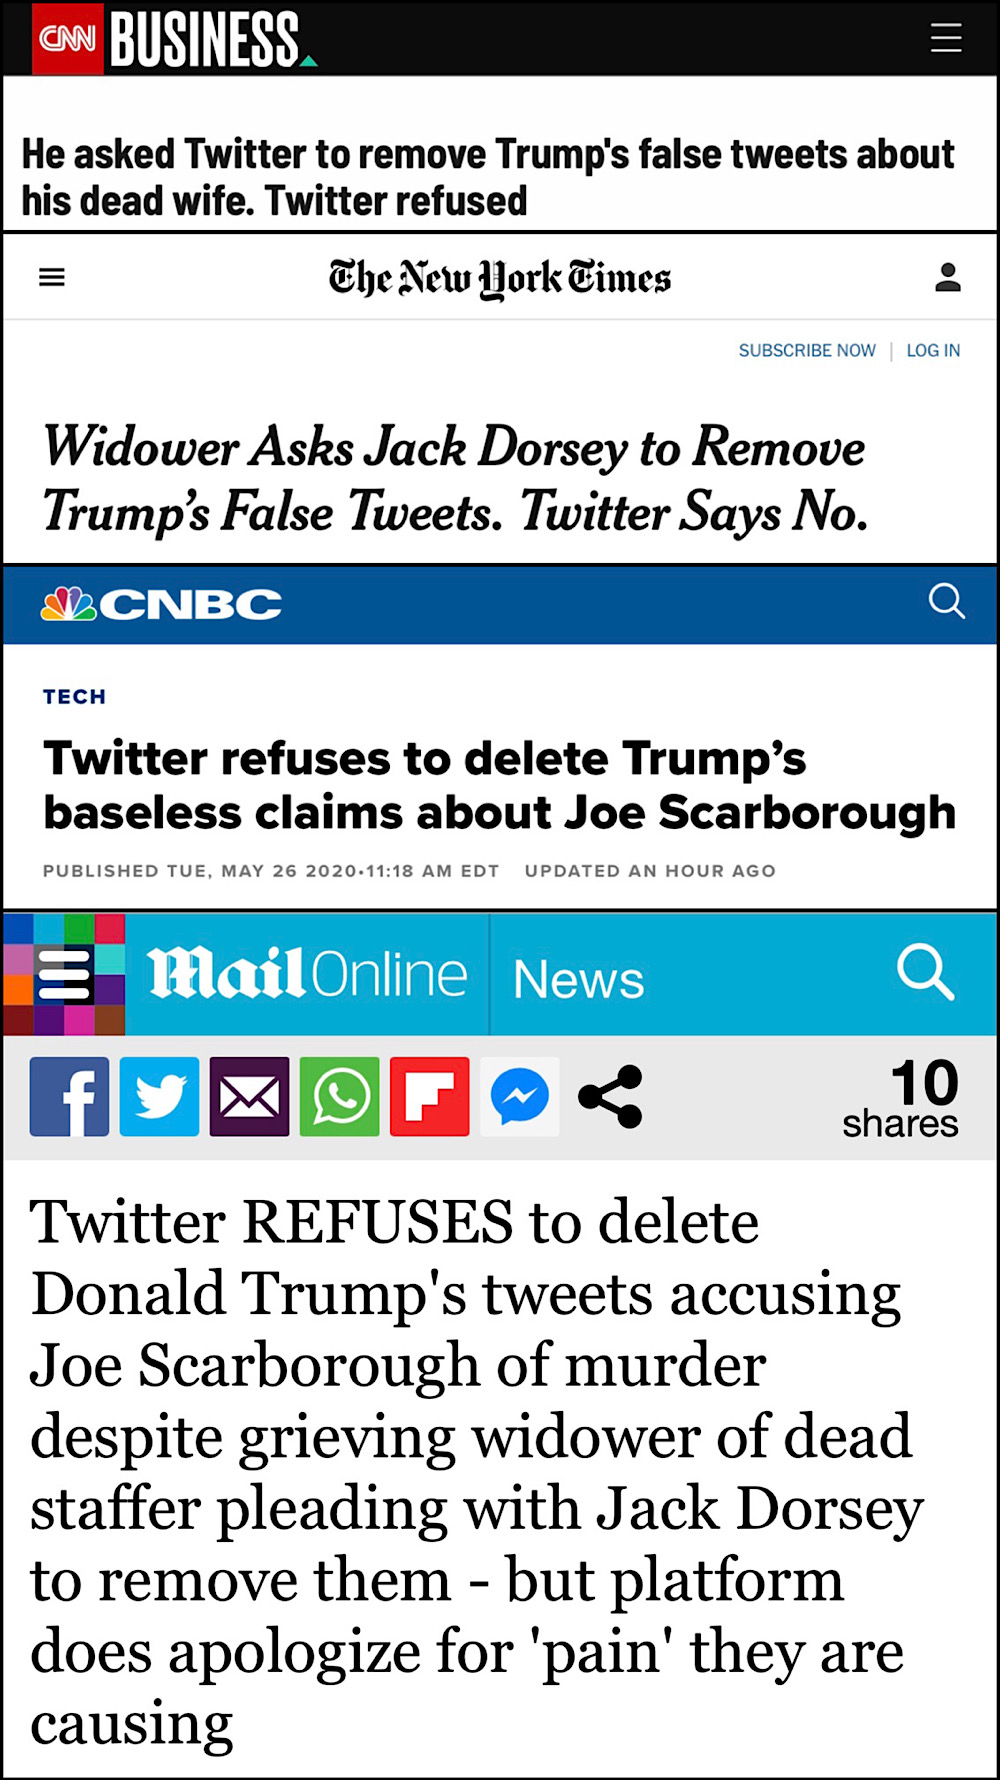 The mainstream media complained that Twitter didn't remove President Trump's tweets immediately (CNN, The New York Times, CNBC, Daily Mail)